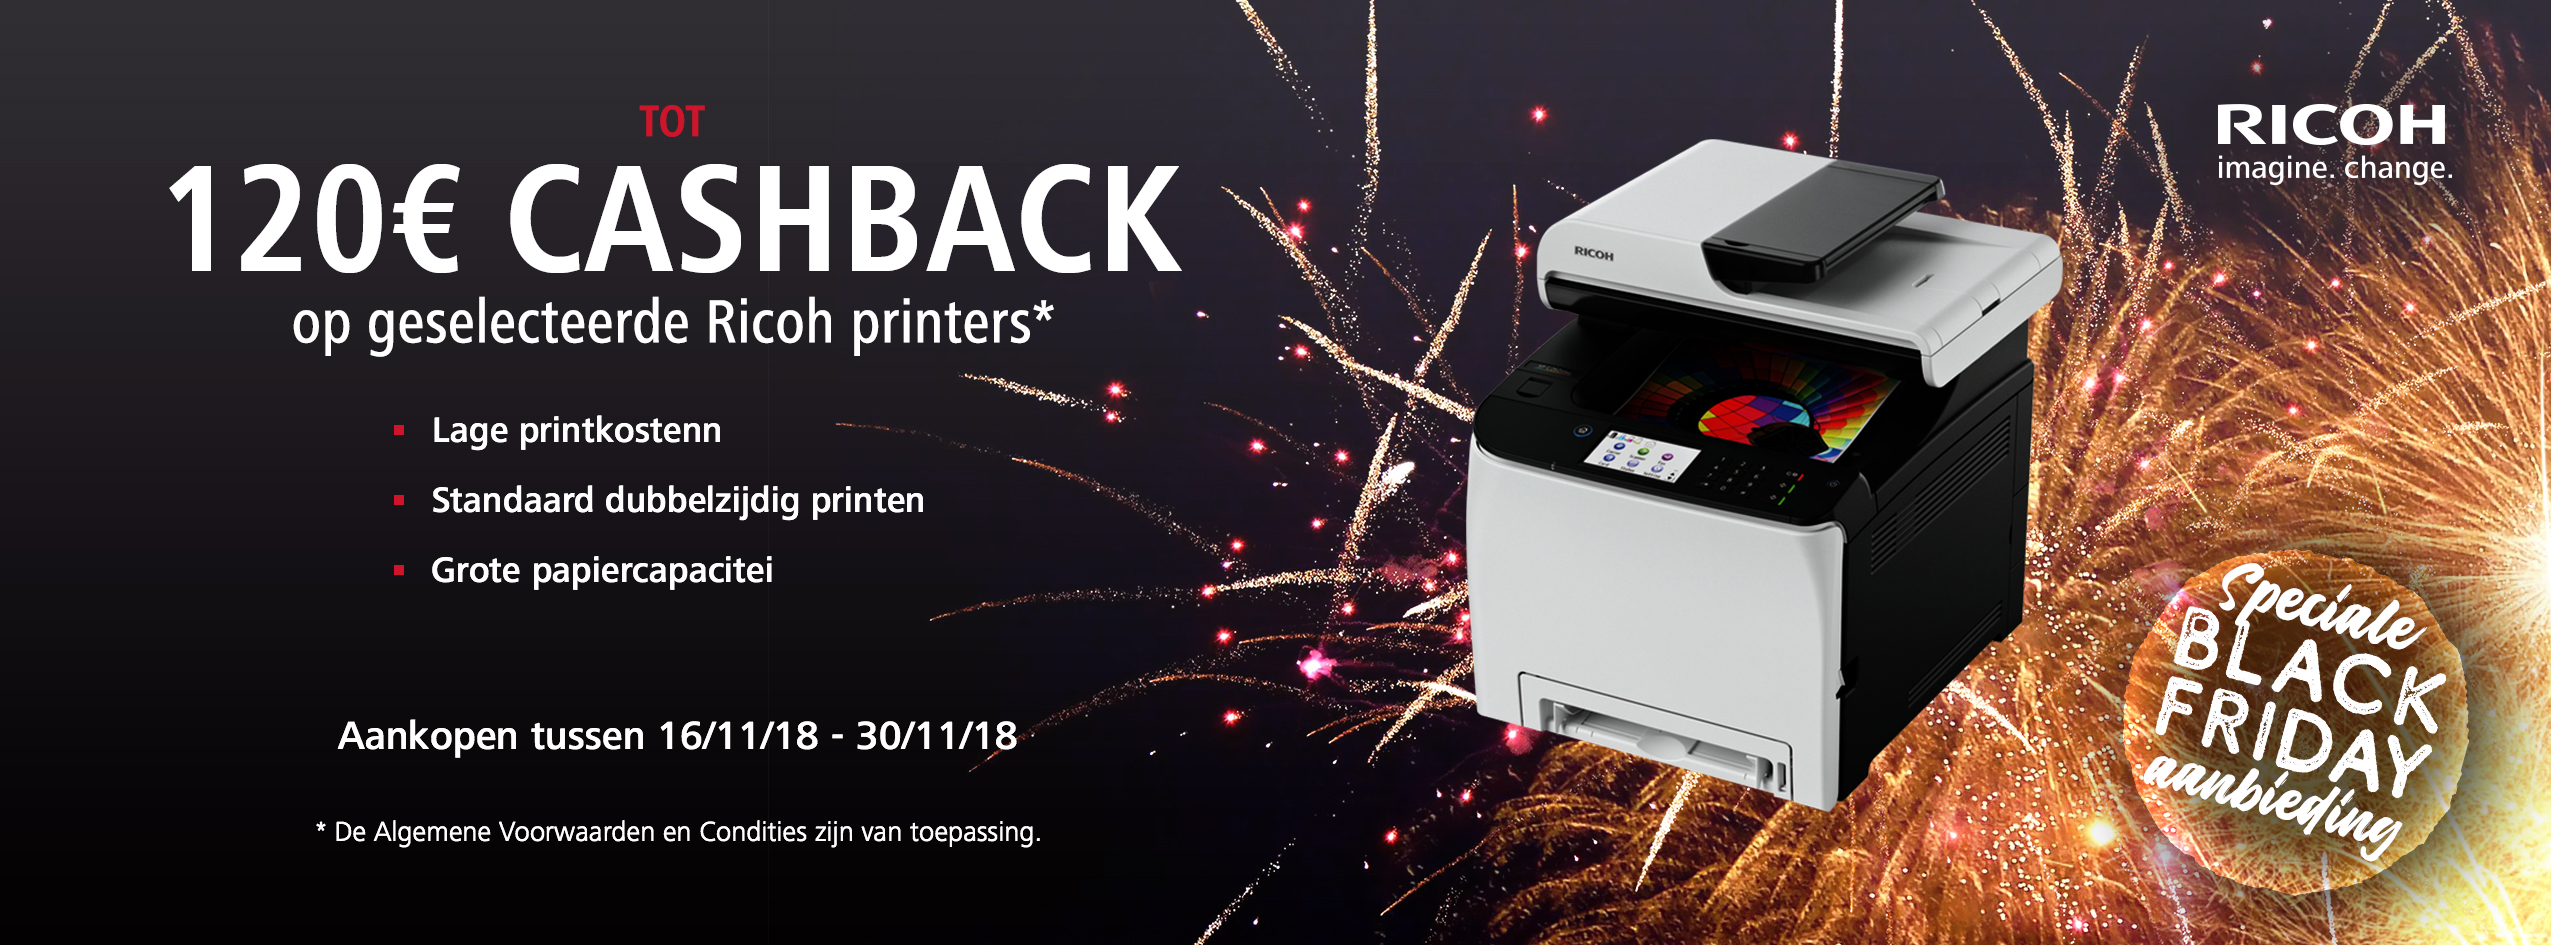 Ricoh Black Friday Accelerator Promotion - NL